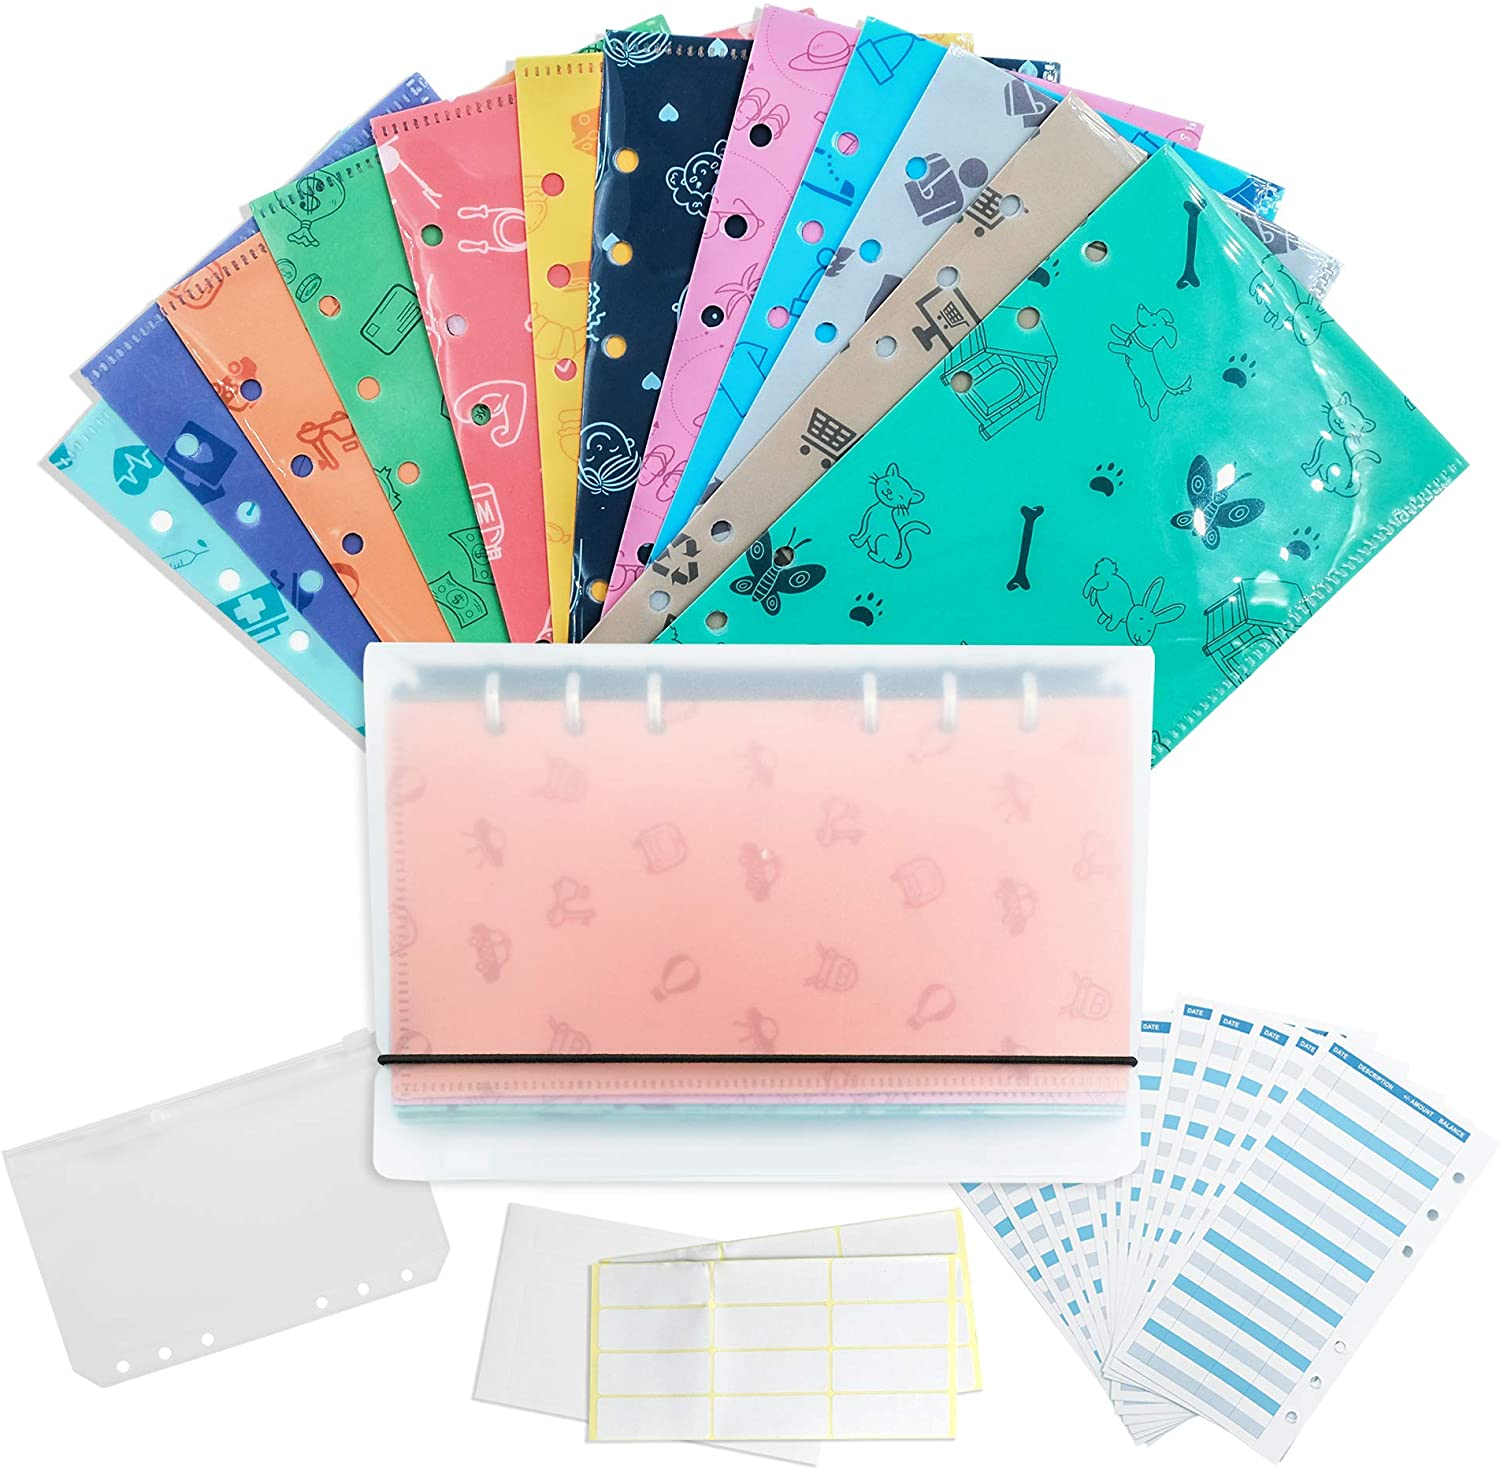 Plastic Budget Wallet for Cash Savings Reusable Cash Envelopes Binder Budget System with 12 Budget Sheets and 2 Stickers,1 Pouch